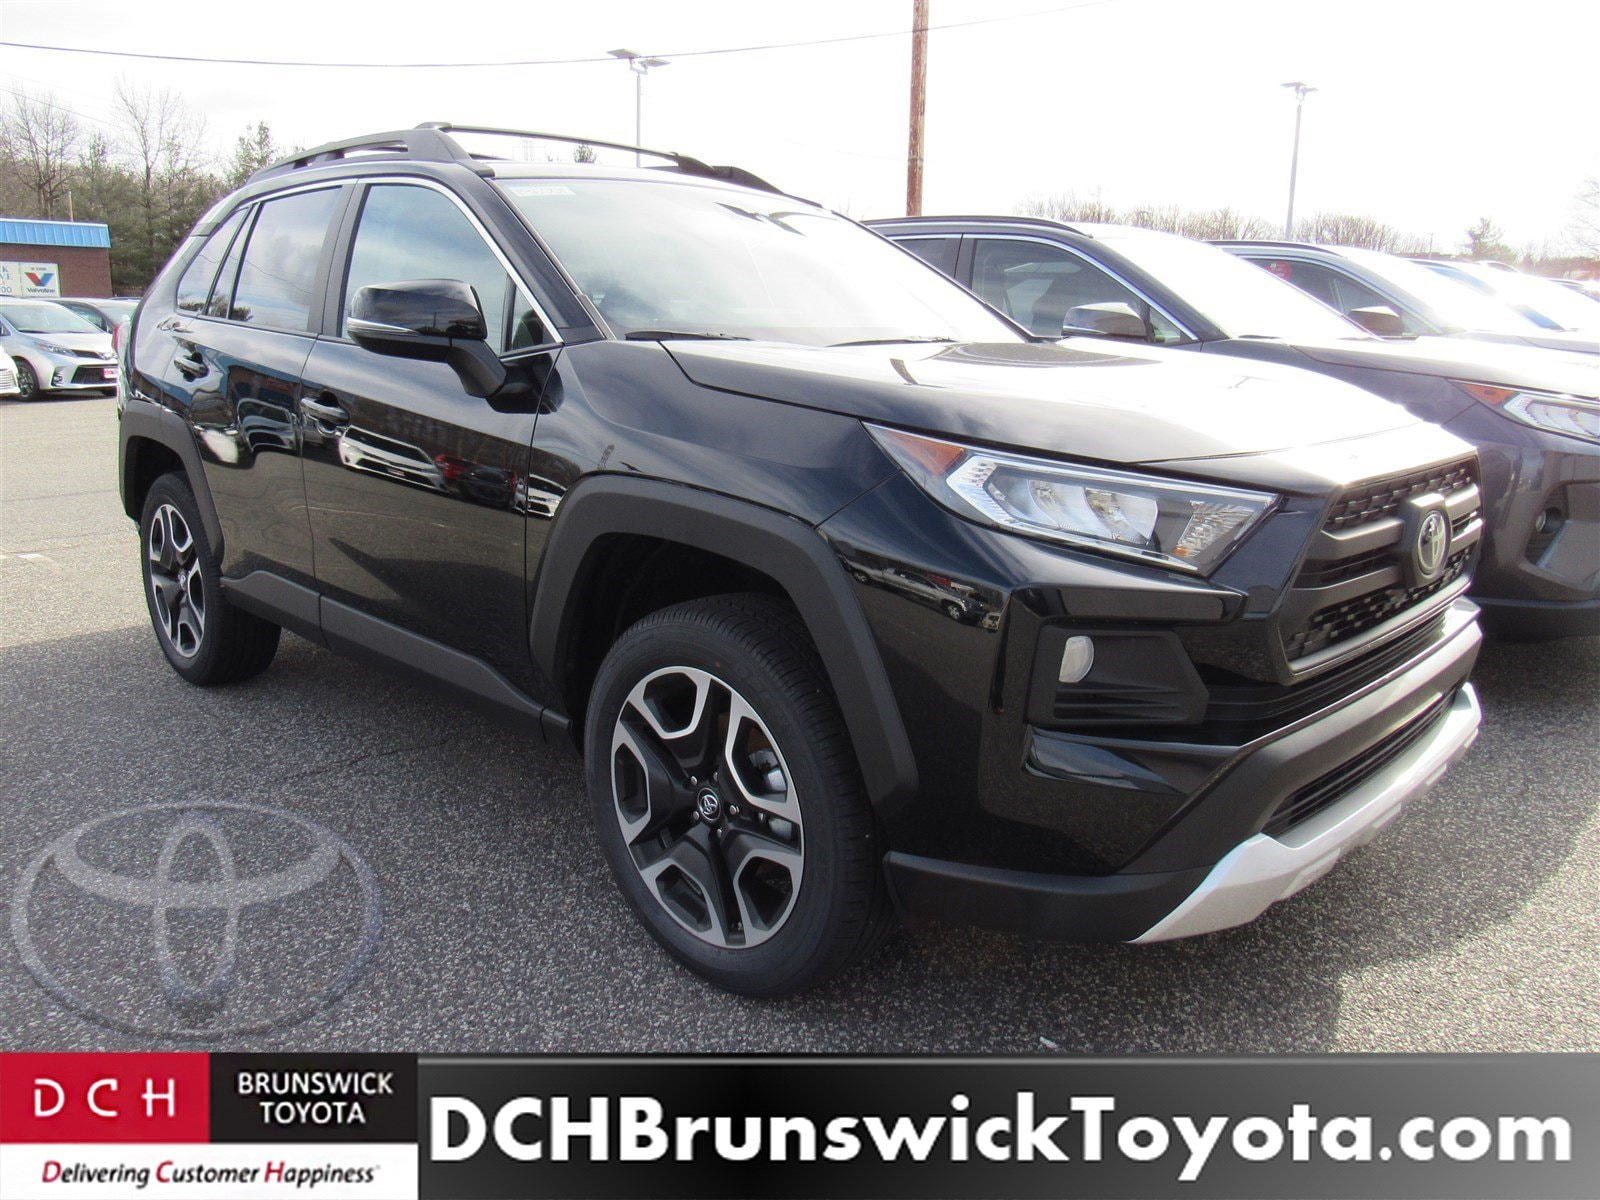 New 2019 Toyota Rav4 Suv Midnight Black For Sale In North Brunswick